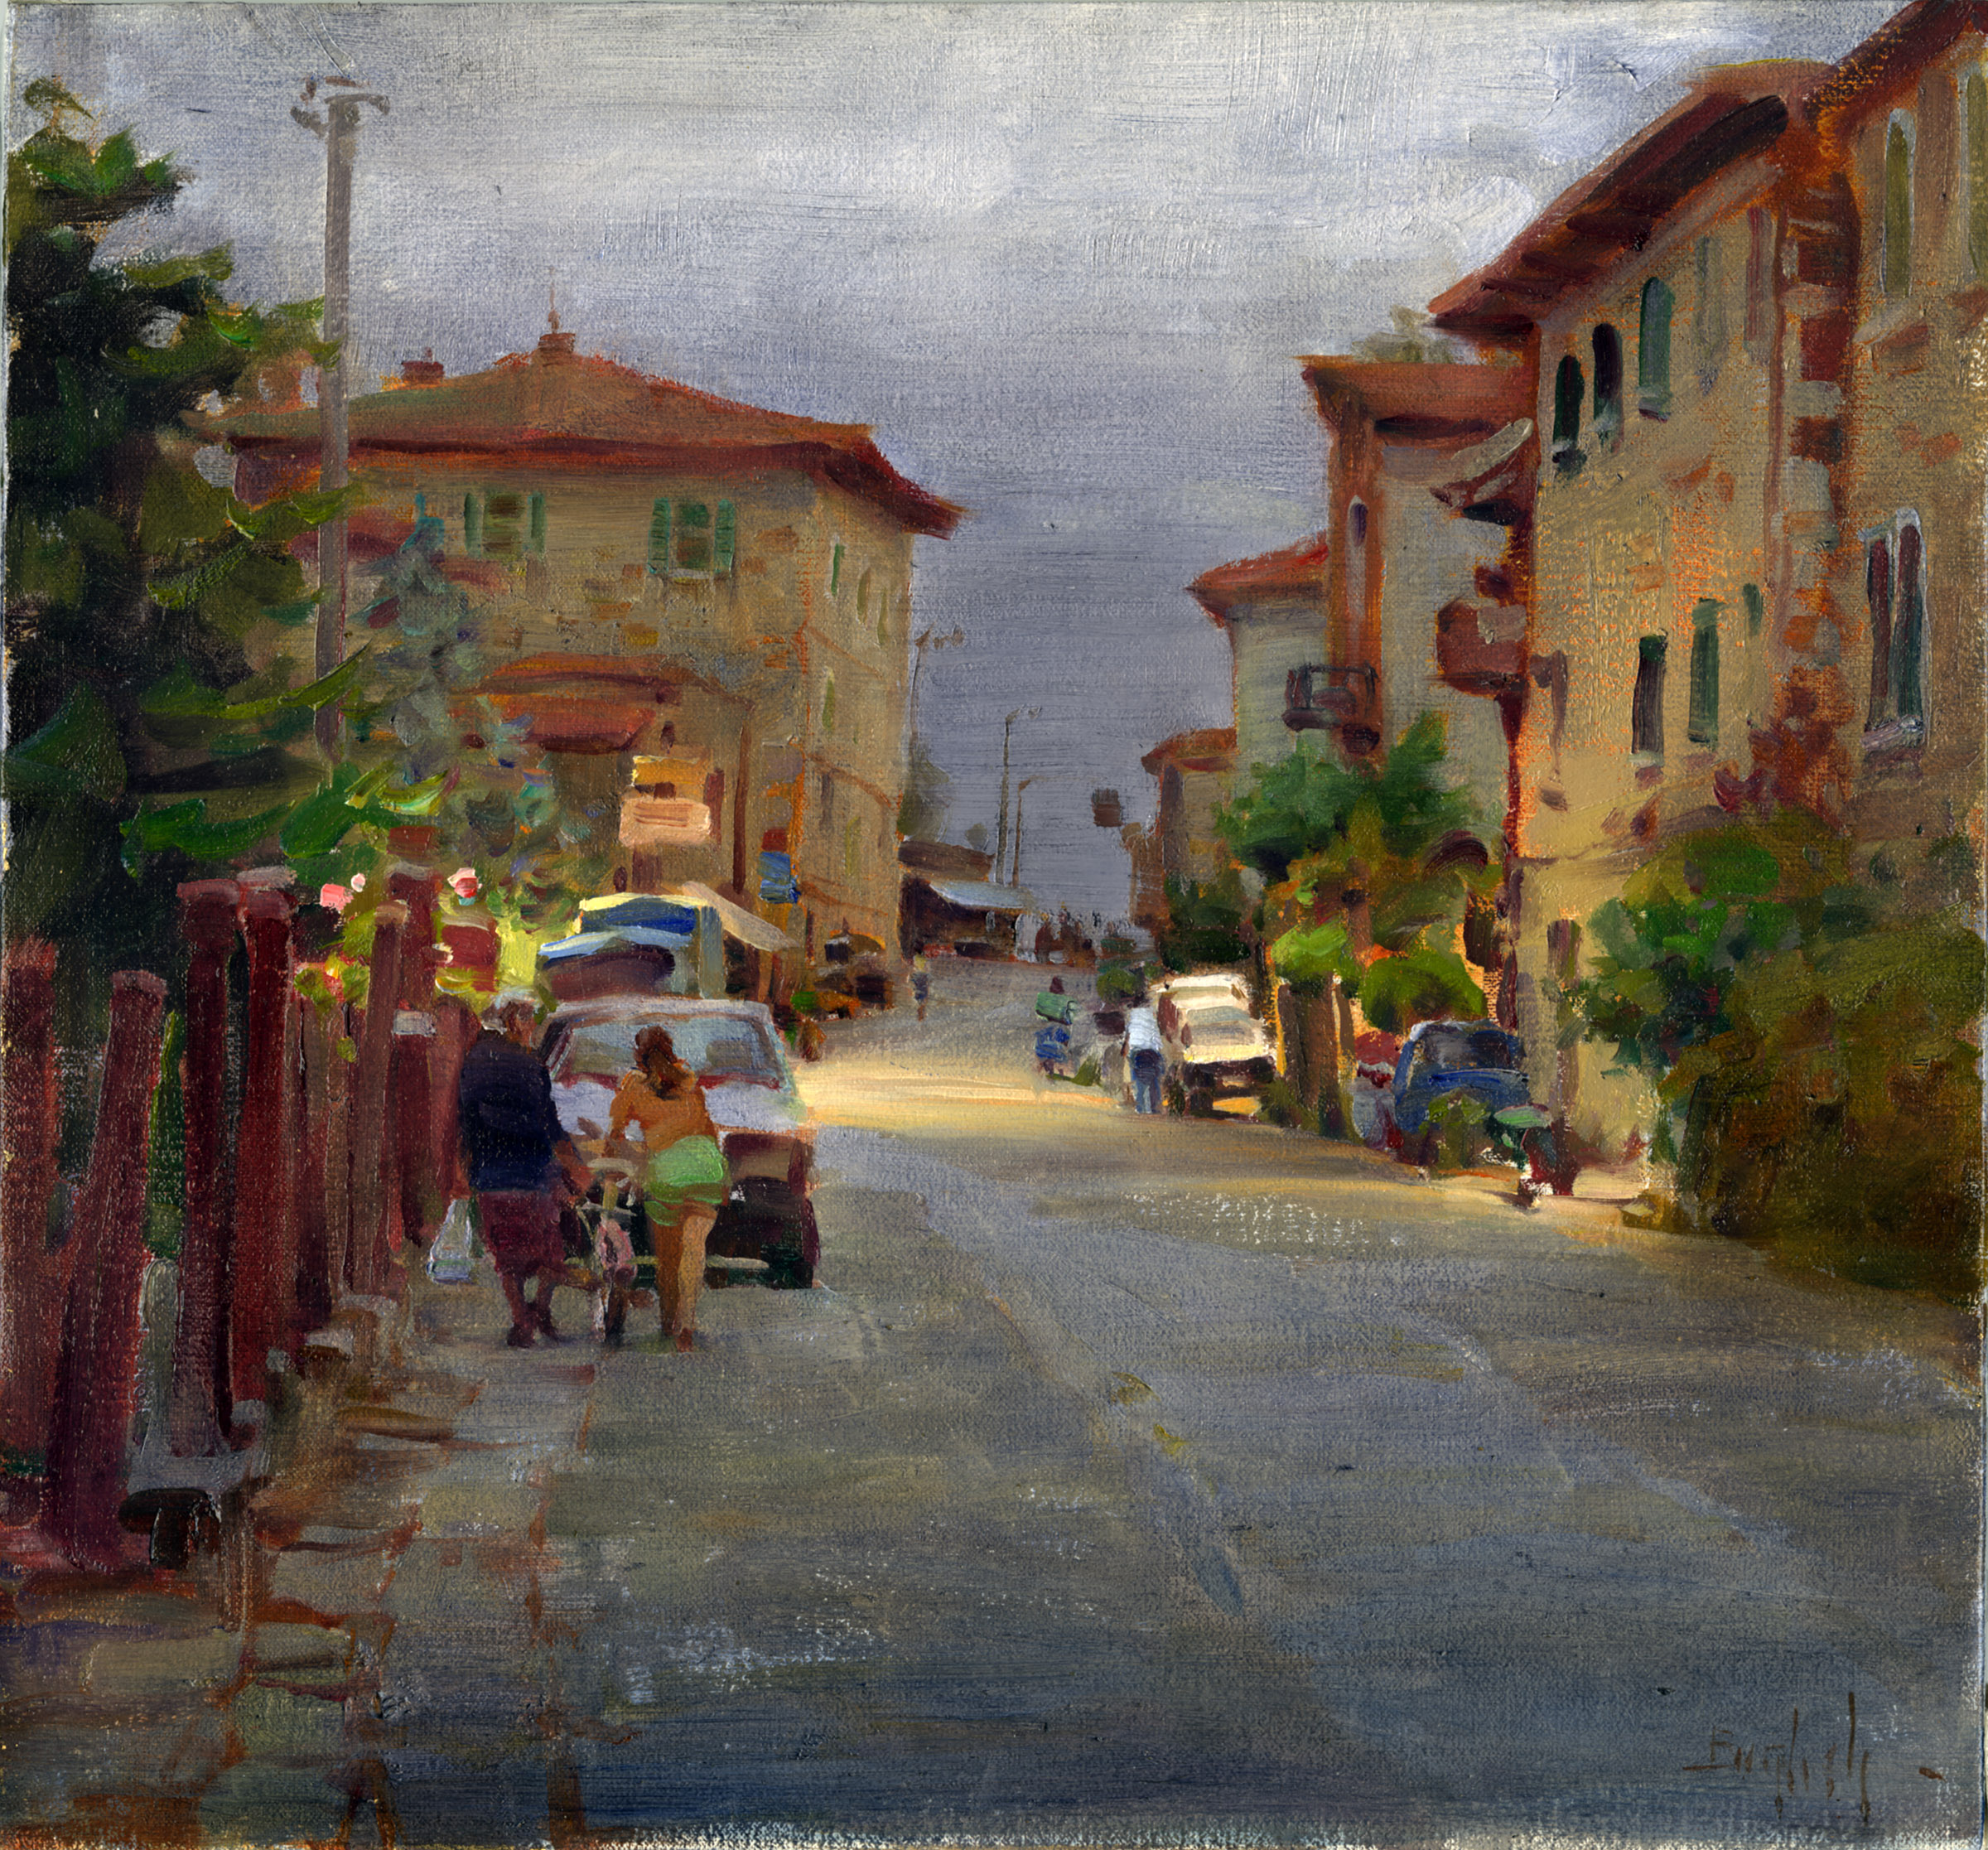 A Village in Italy by  Kim English - Masterpiece Online